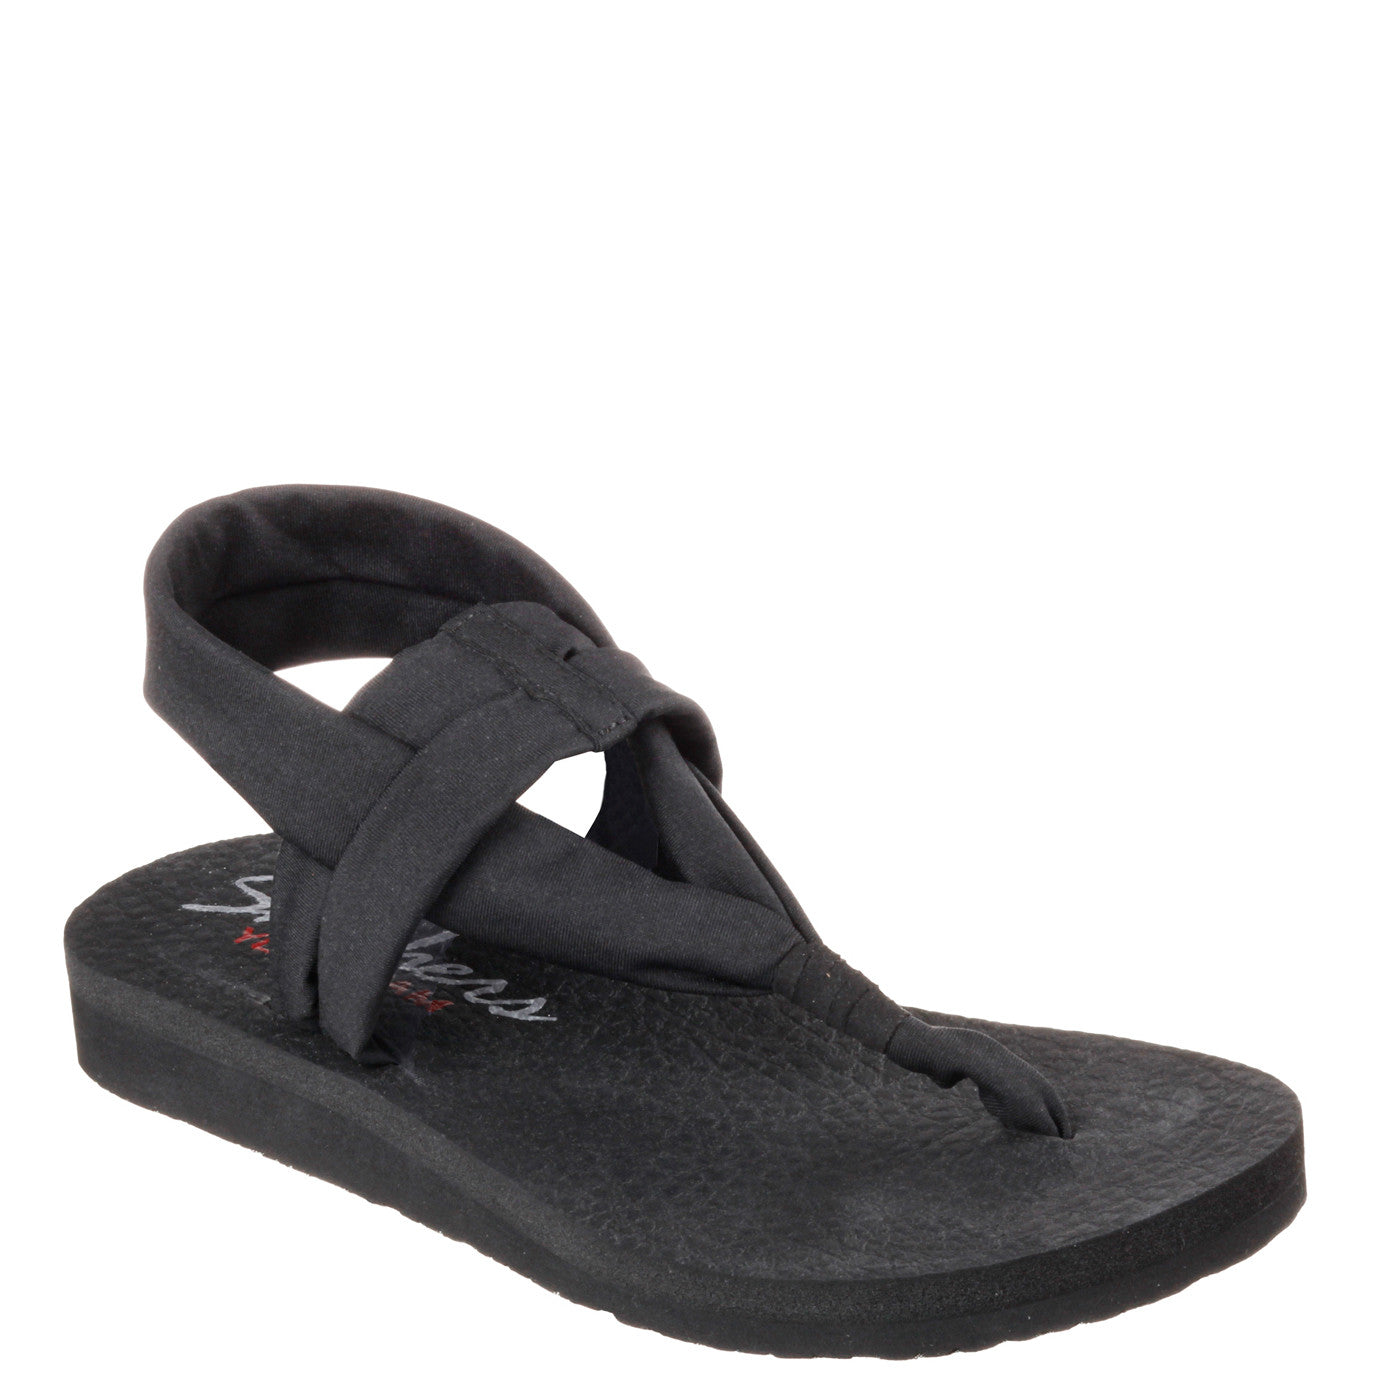 meet 12695 07f7b Skechers Women s Meditation Studio Kicks Sandal - Black 38615 ...